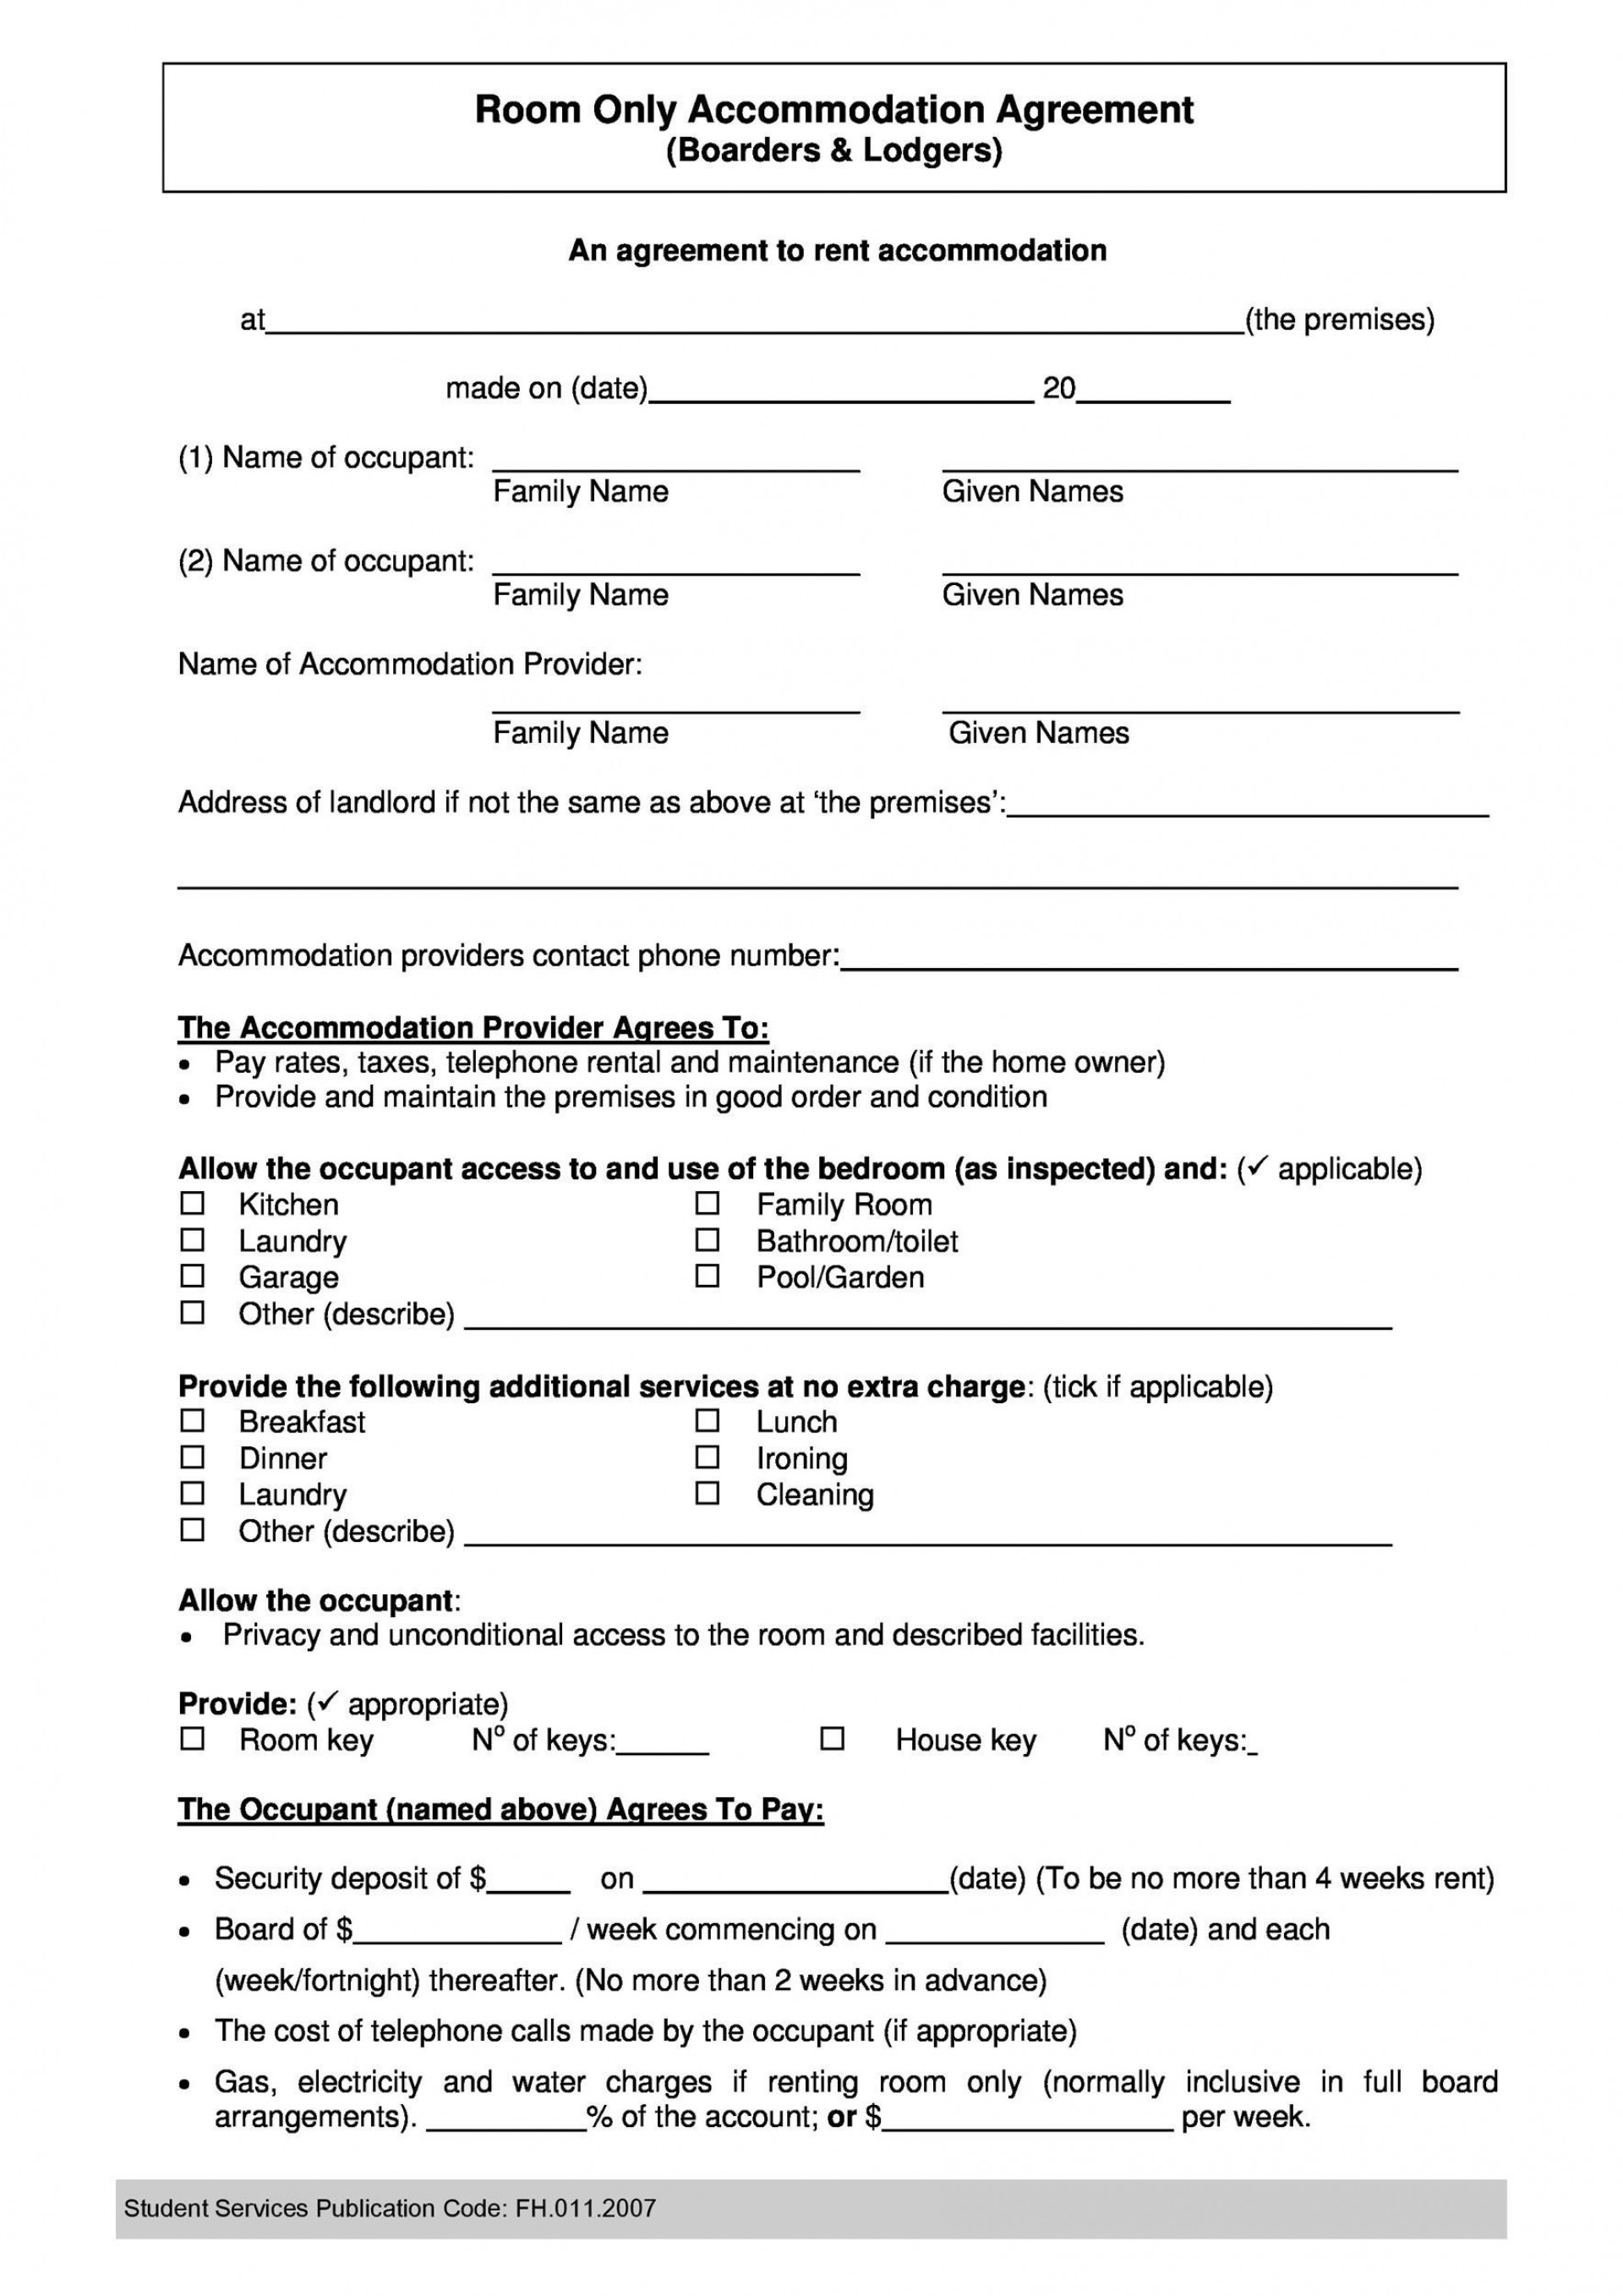 005 Fearsome Simple Room Rental Agreement Template Highest Quality  Free1920